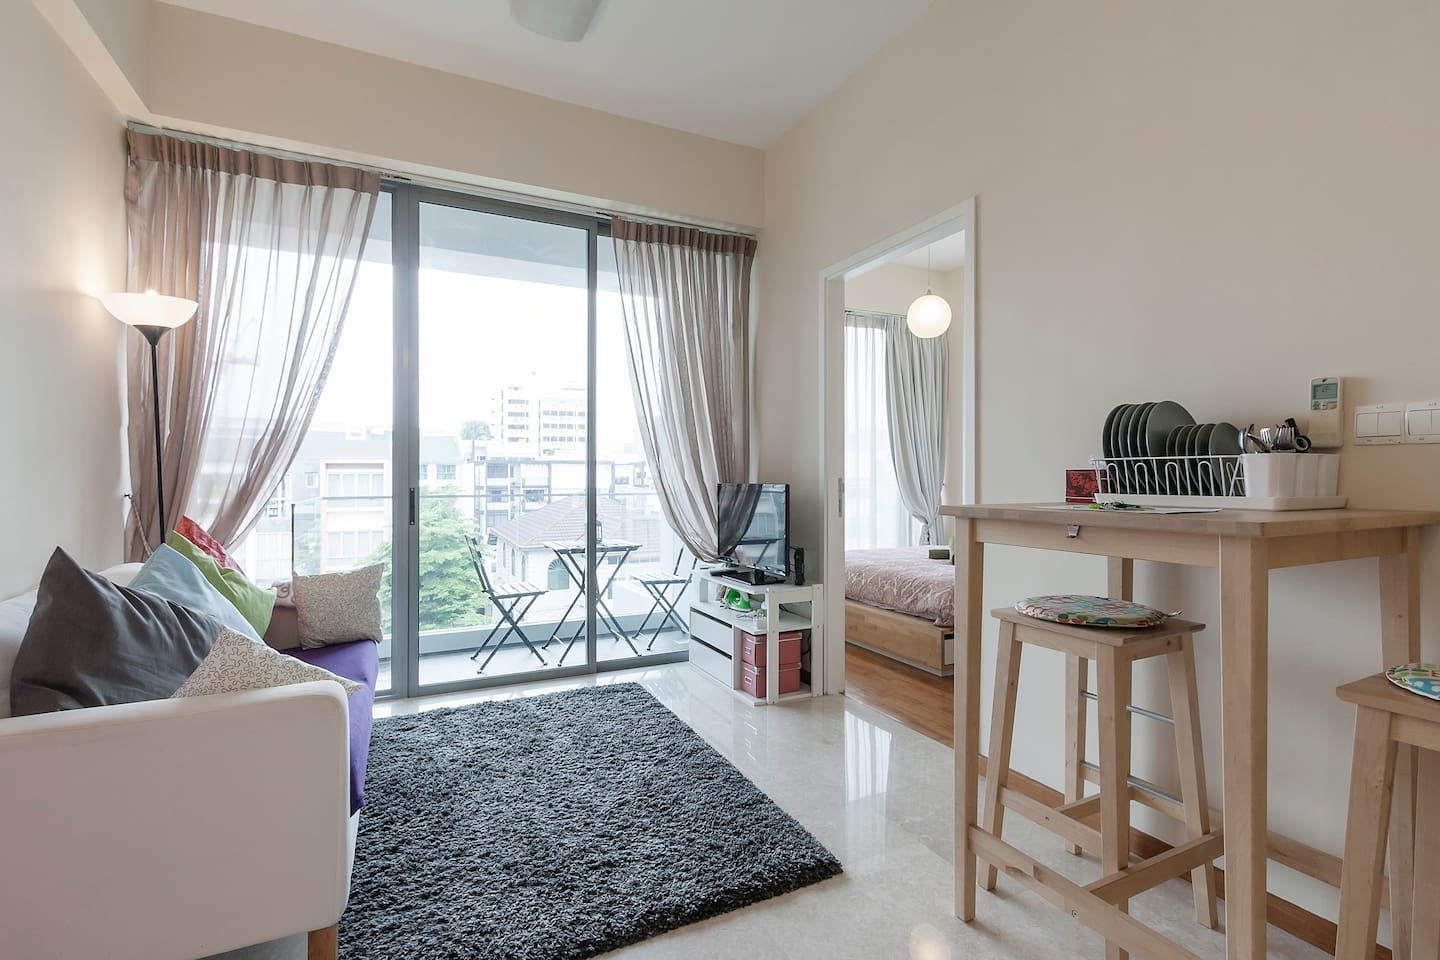 2rm cosy condo near orchard rd serviced apartments for rent in